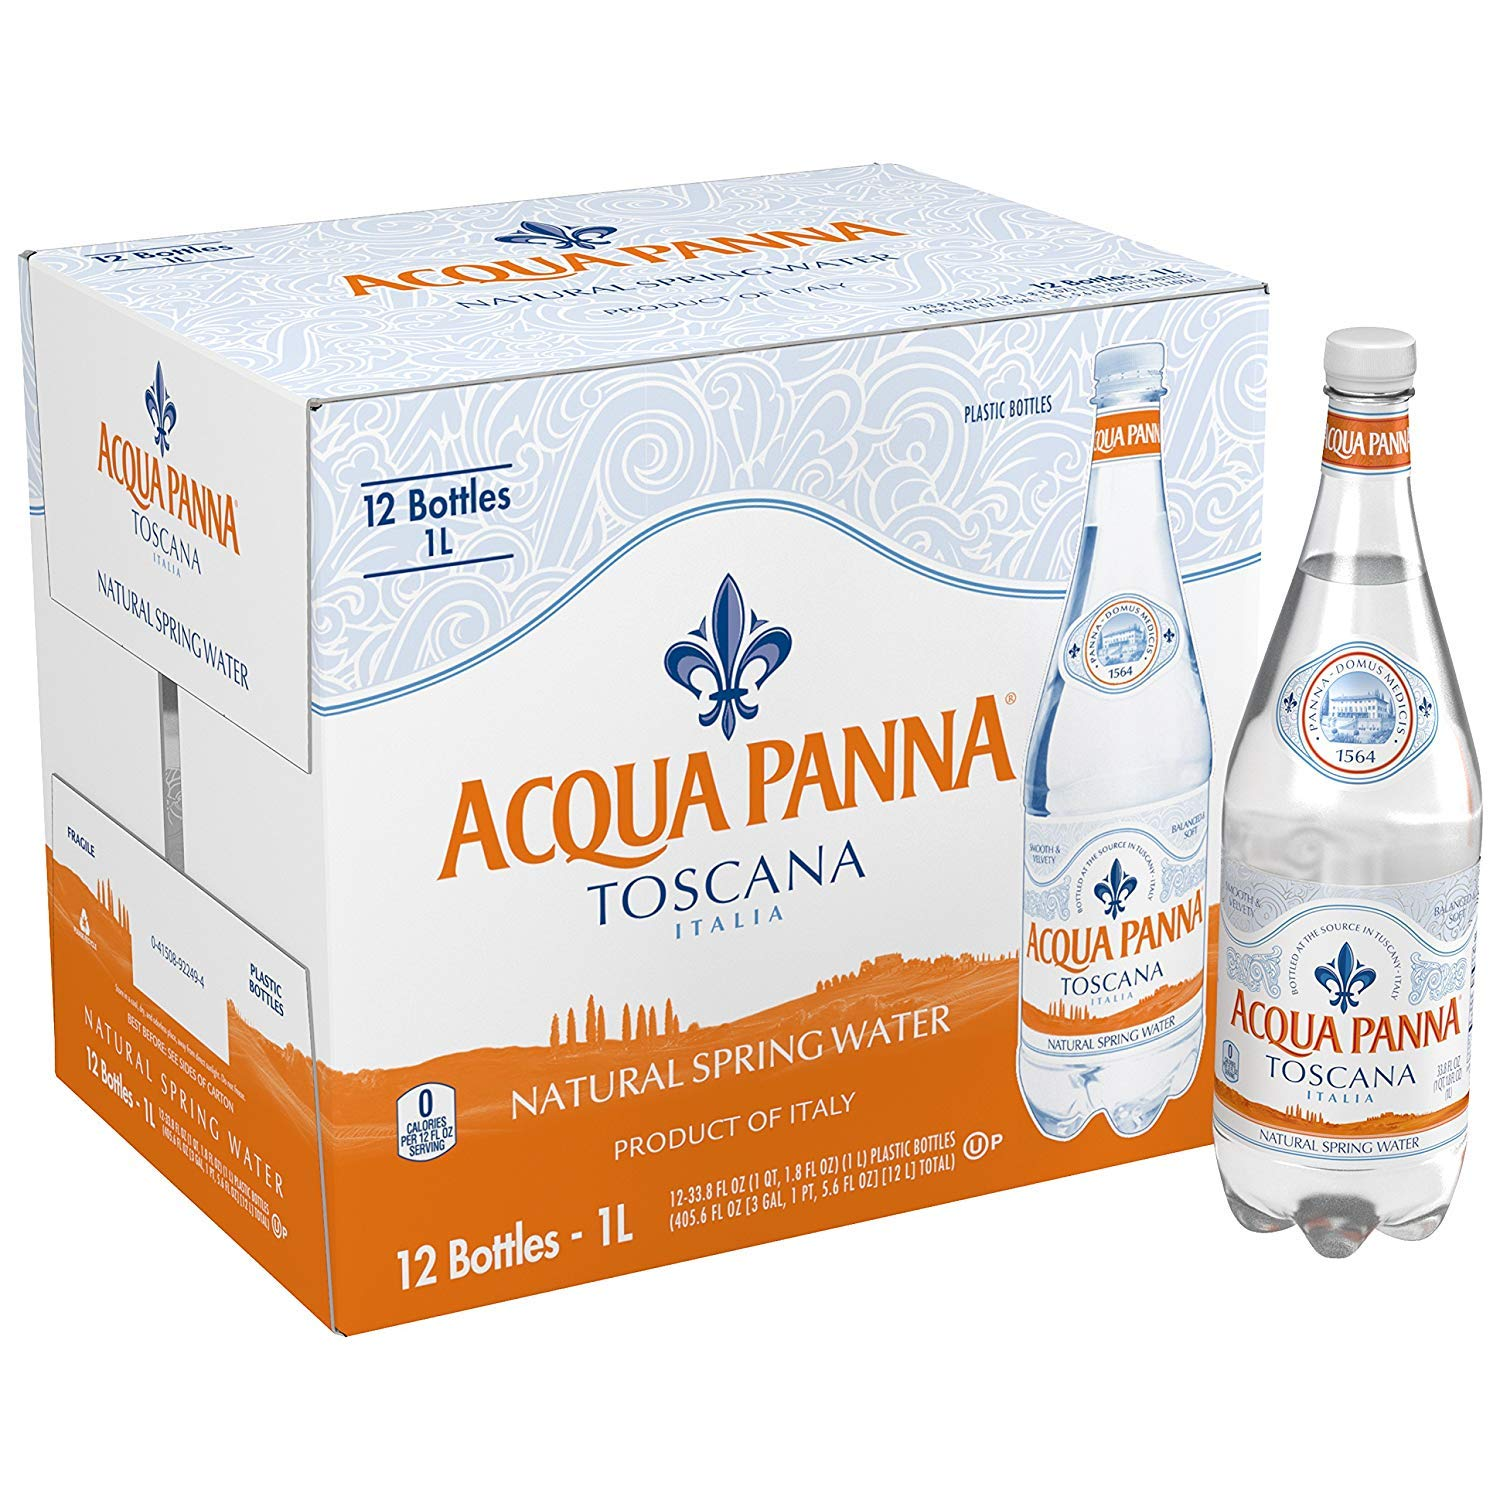 Acqua Panna sgdfg Natural Spring Water, 33.8-Ounce Plastic Bottles (Pack of 12) 2 Cases